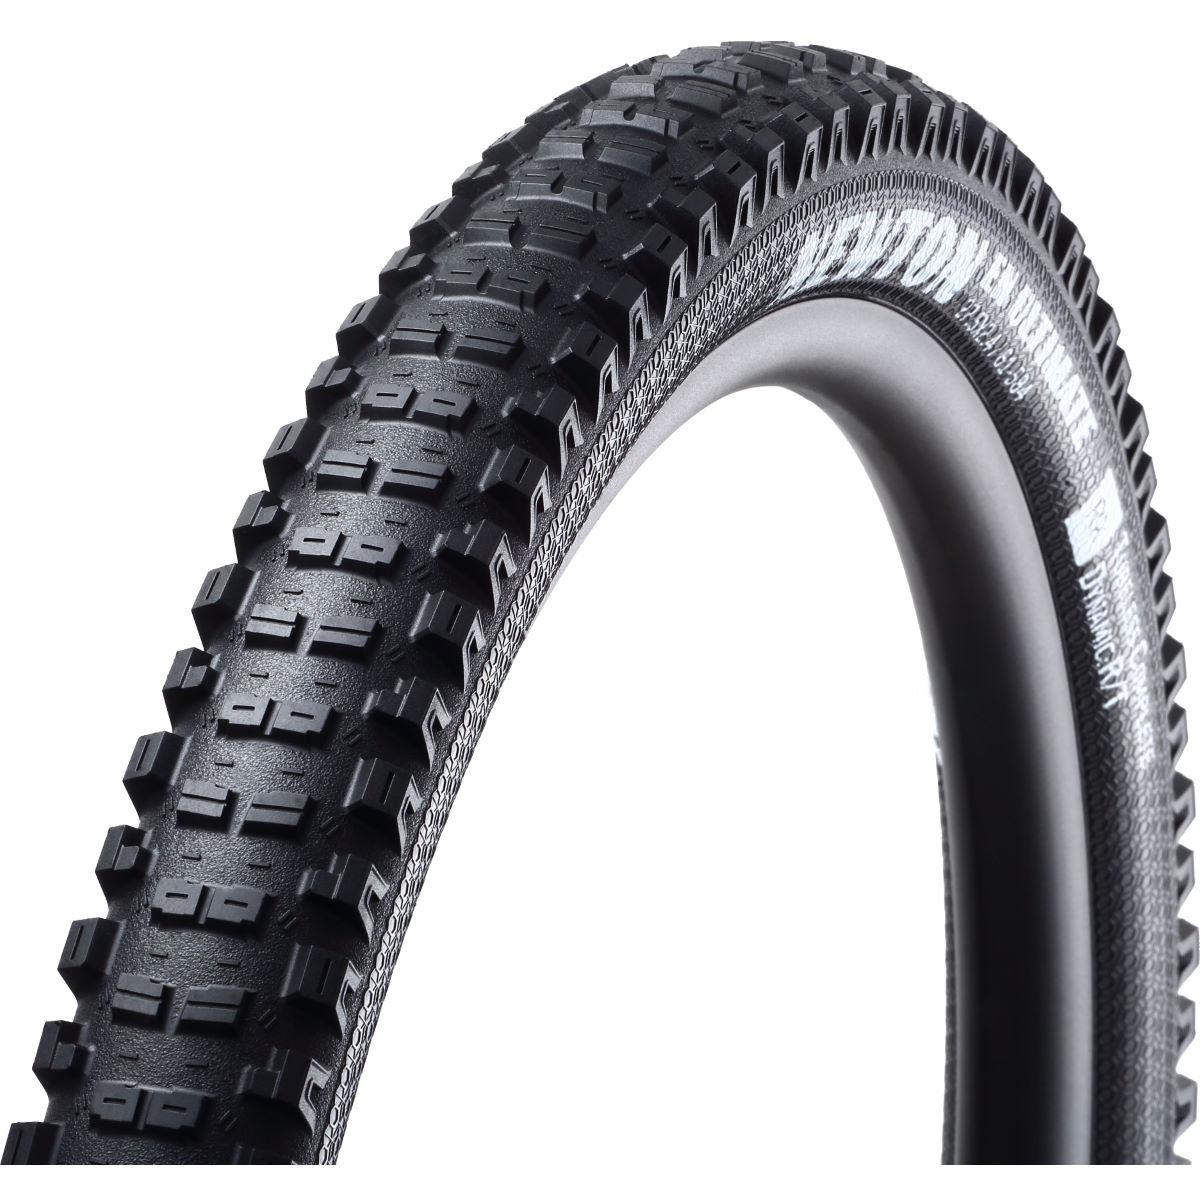 Goodyear Goodyear Newton DH Ultimate Tubeless MTB Tyre   Tyres